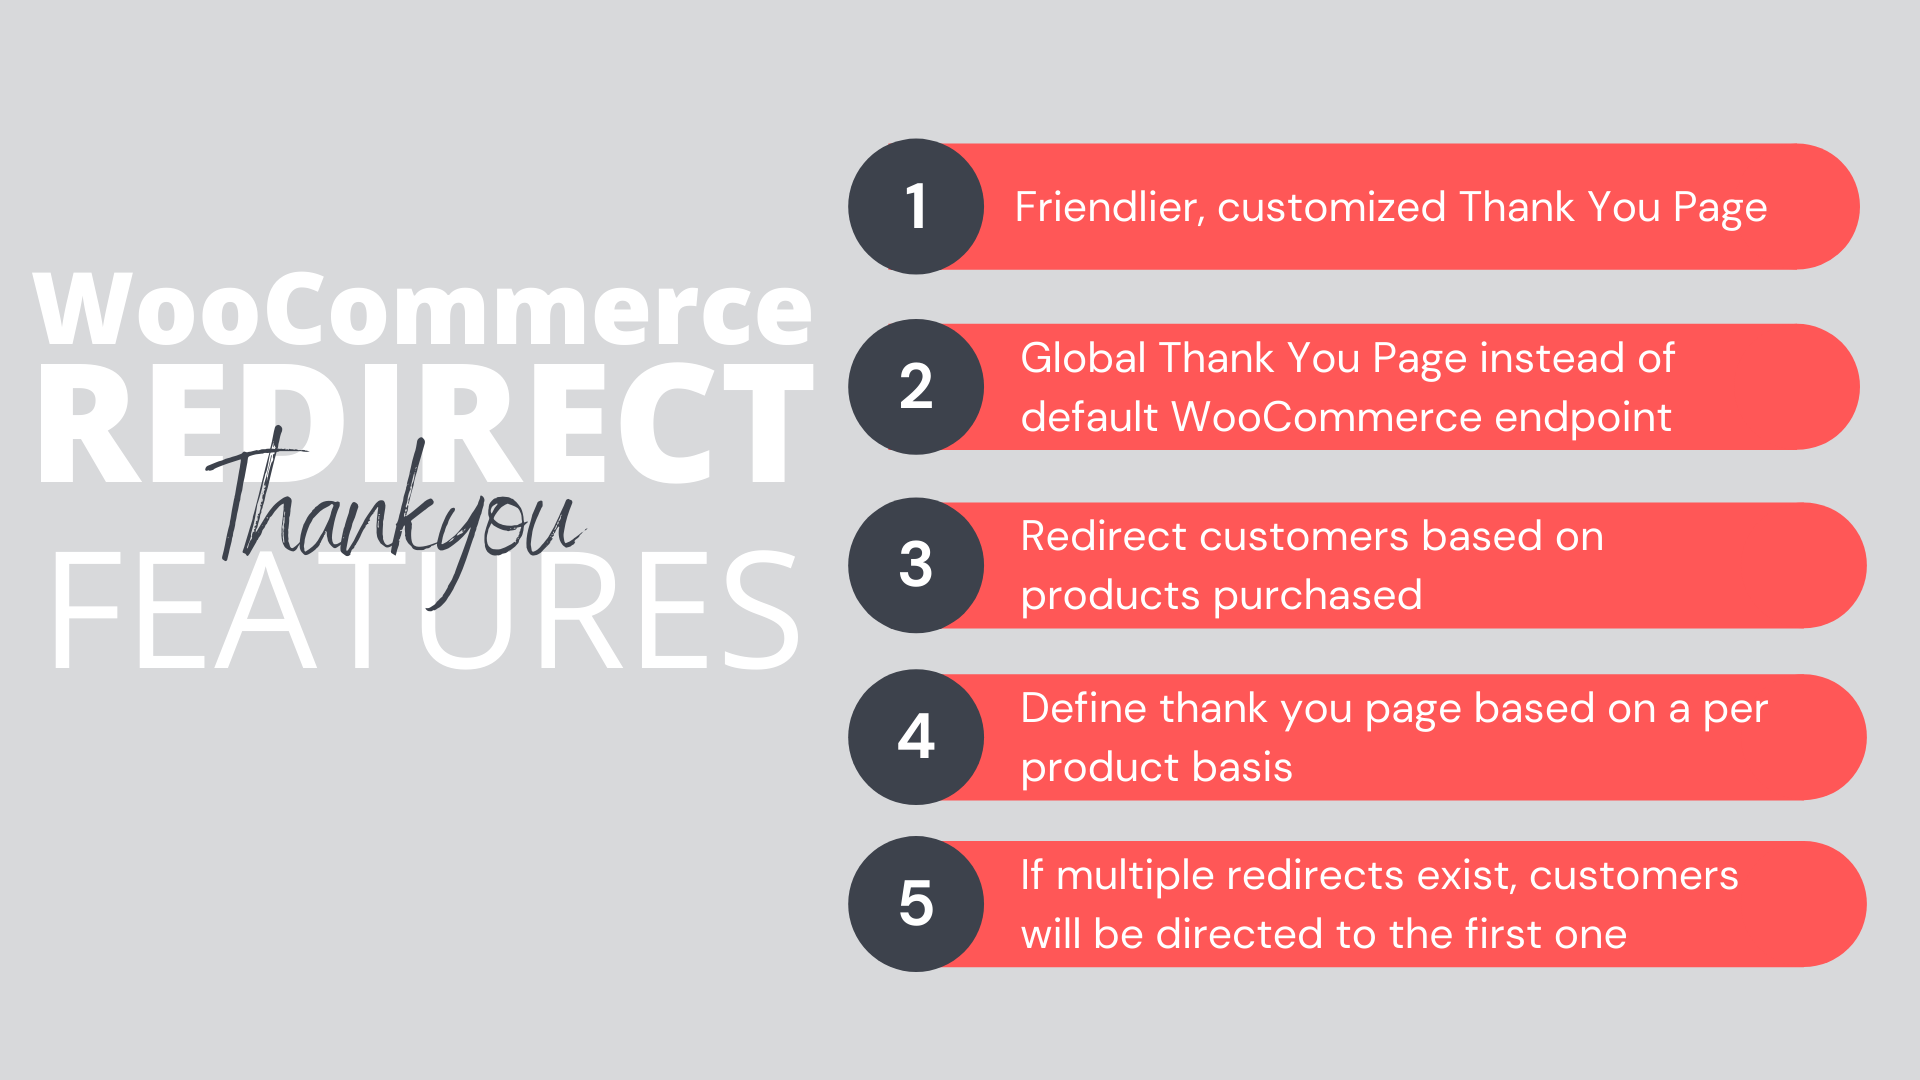 Redirect Thankyou Features